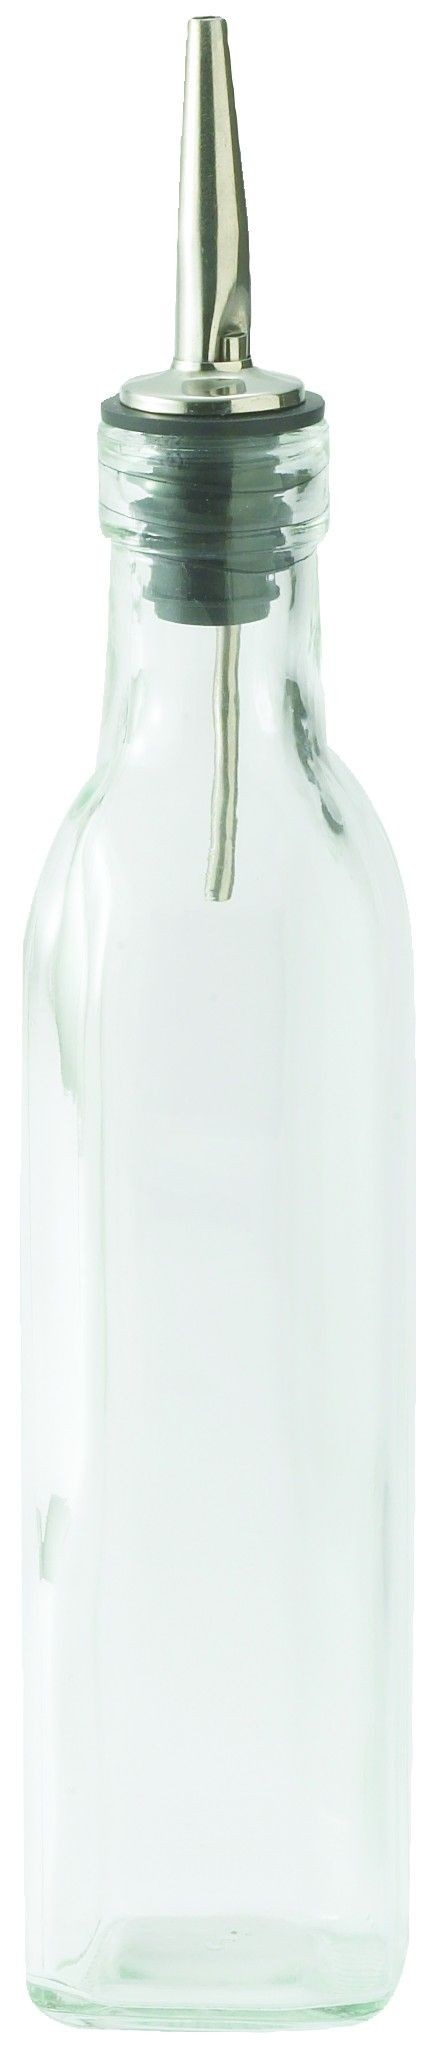 8 Oz. Oil/Vinegar Cruet With Pourer